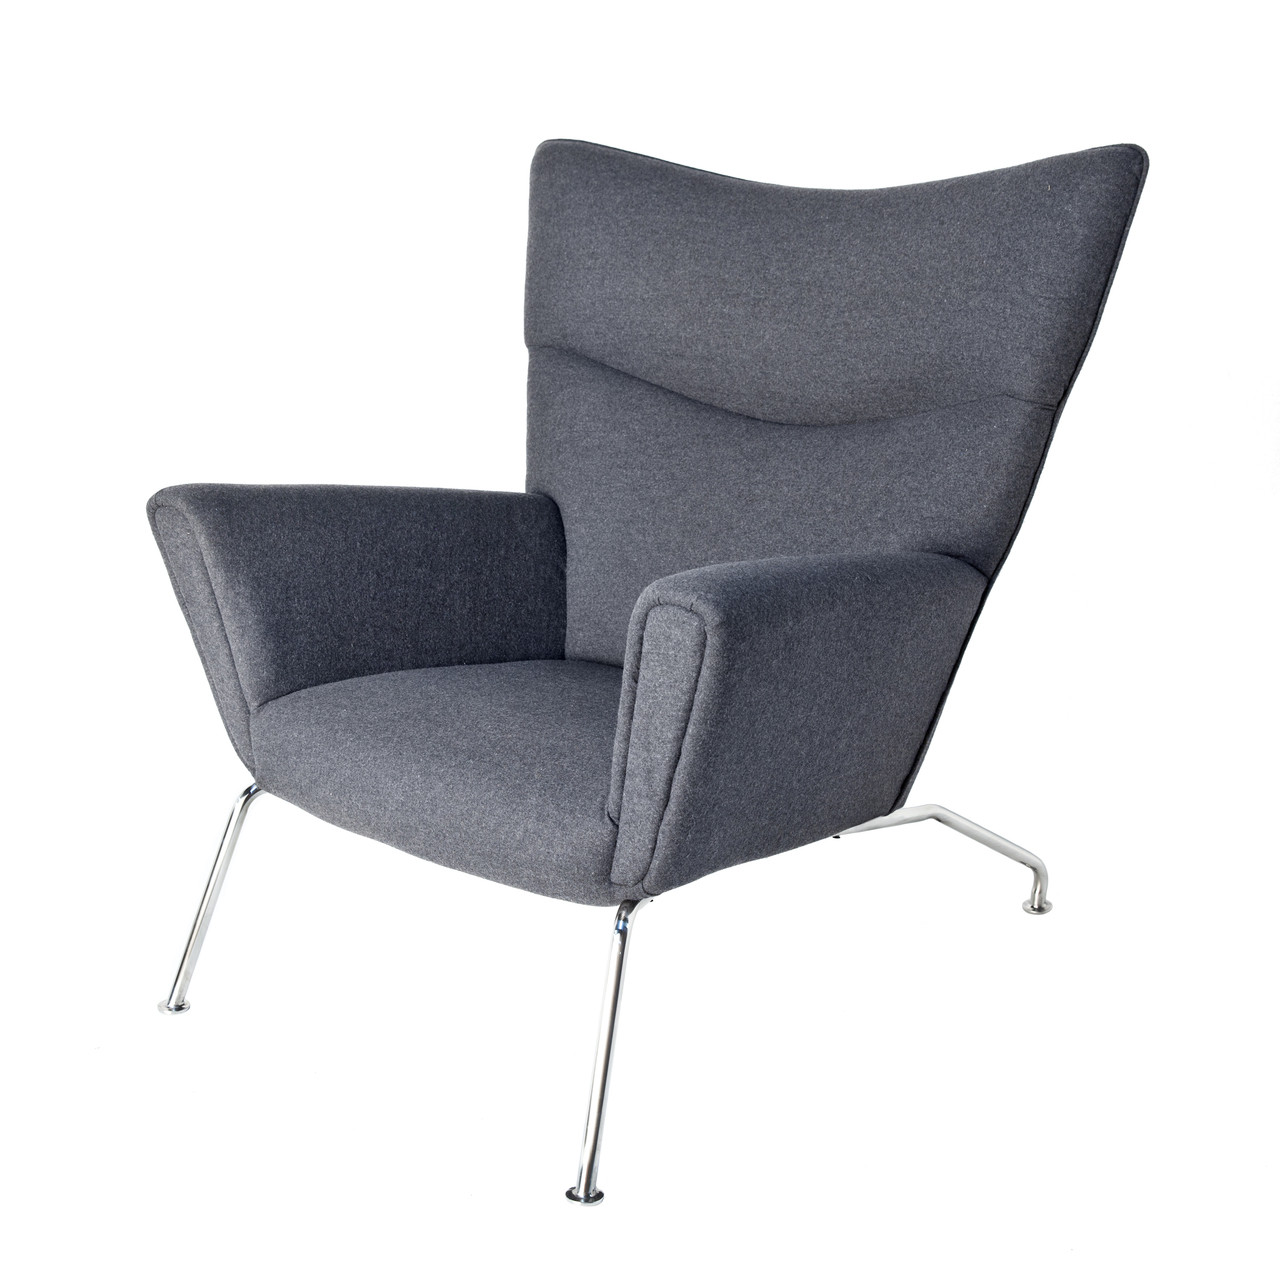 Replica hans wegner hans wegner replica ch445 chair ch445 chair ch445 wing chair wing chair - Wegner wing chair replica ...